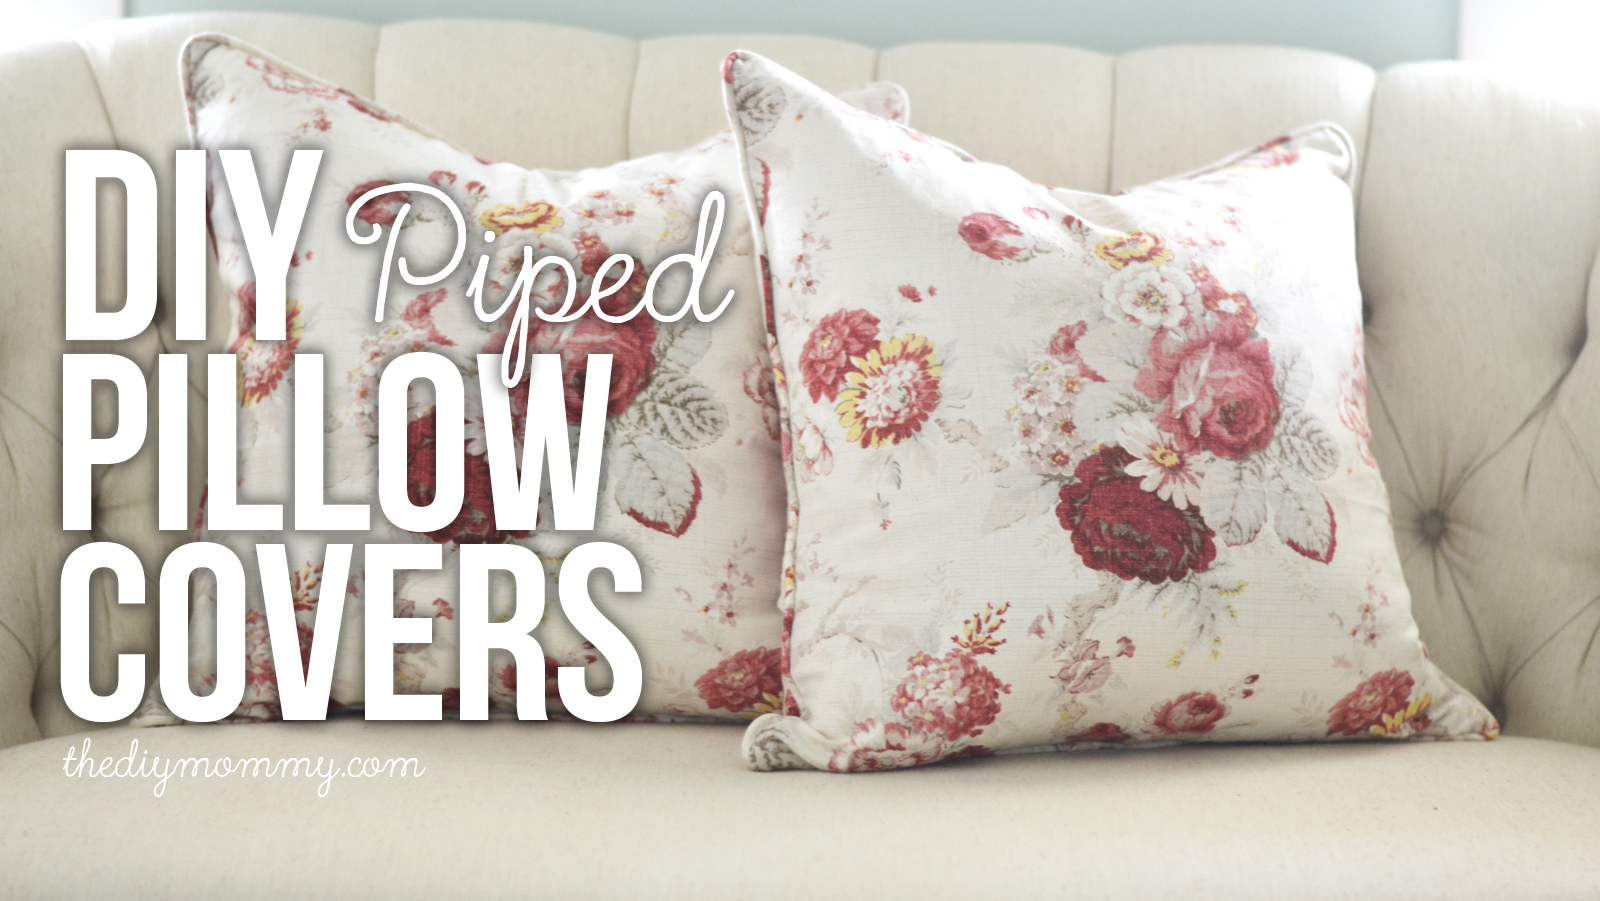 Video Tutorial: How to sew gorgeous professional looking pillow covers with piped edges and